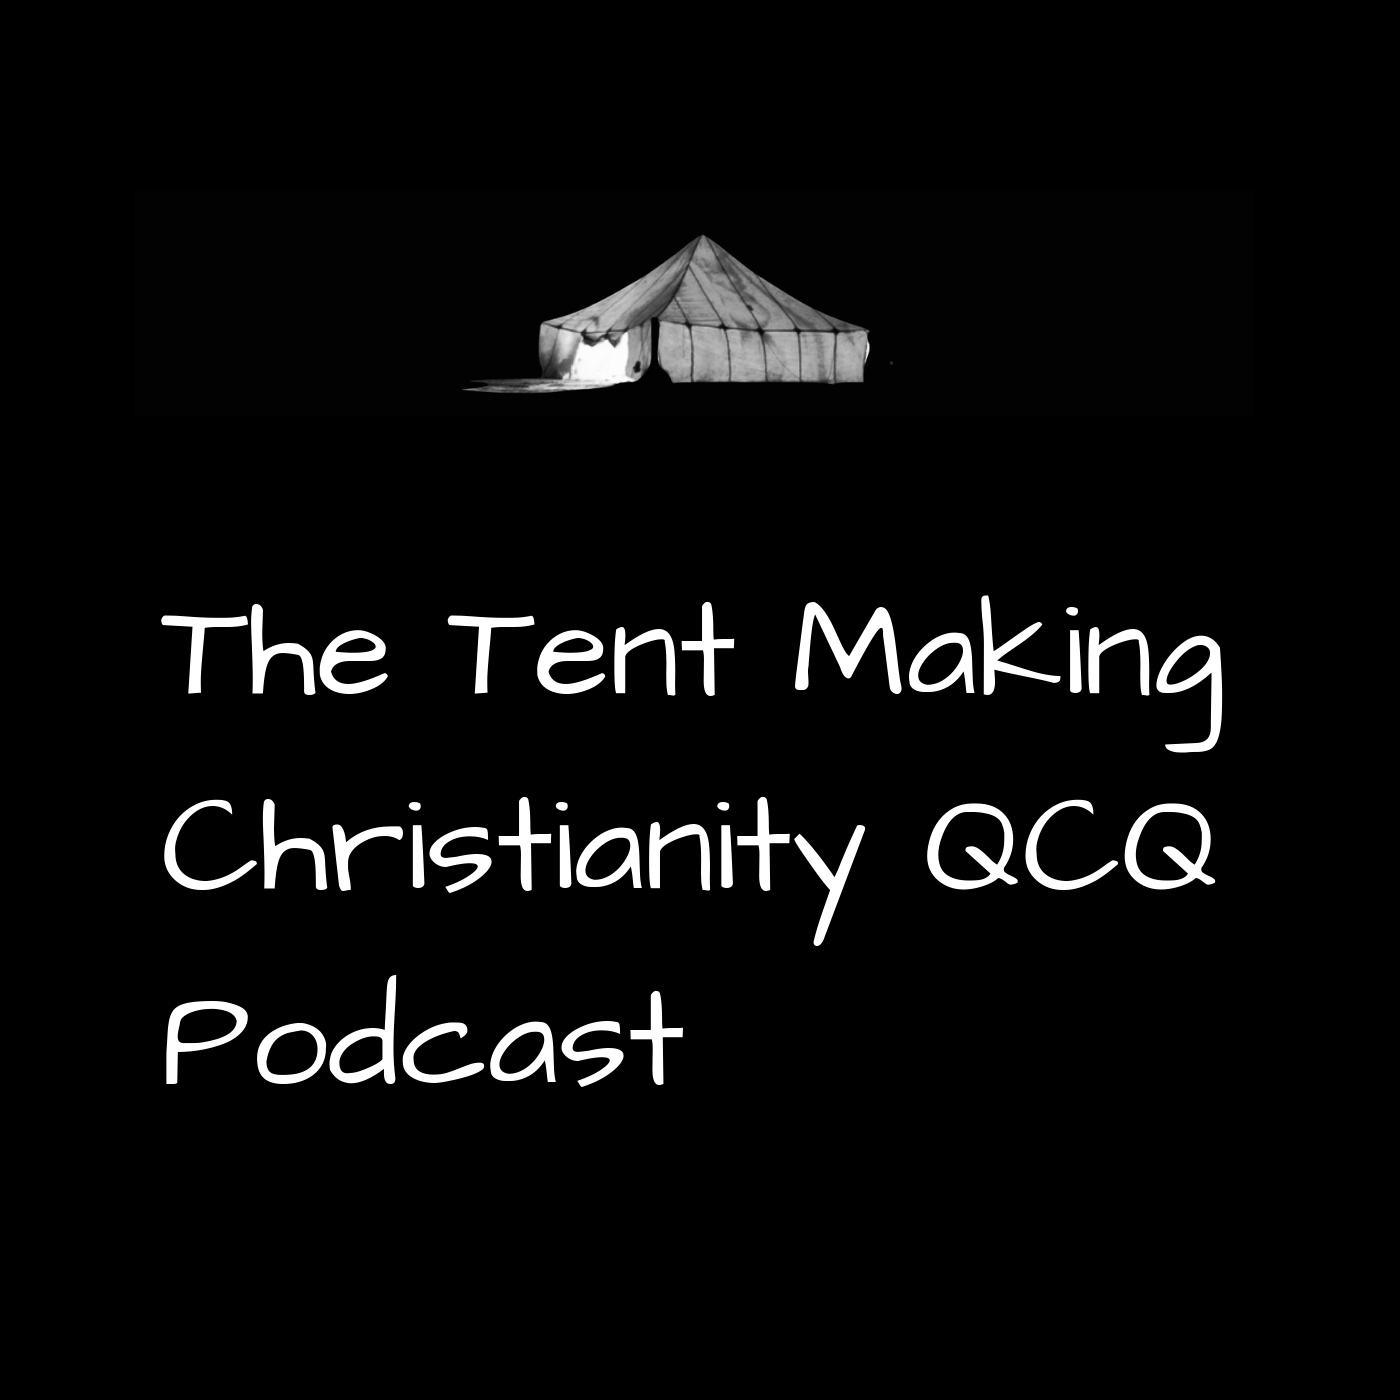 Artwork for The Tent Making Christianity QCQ Podcast #220